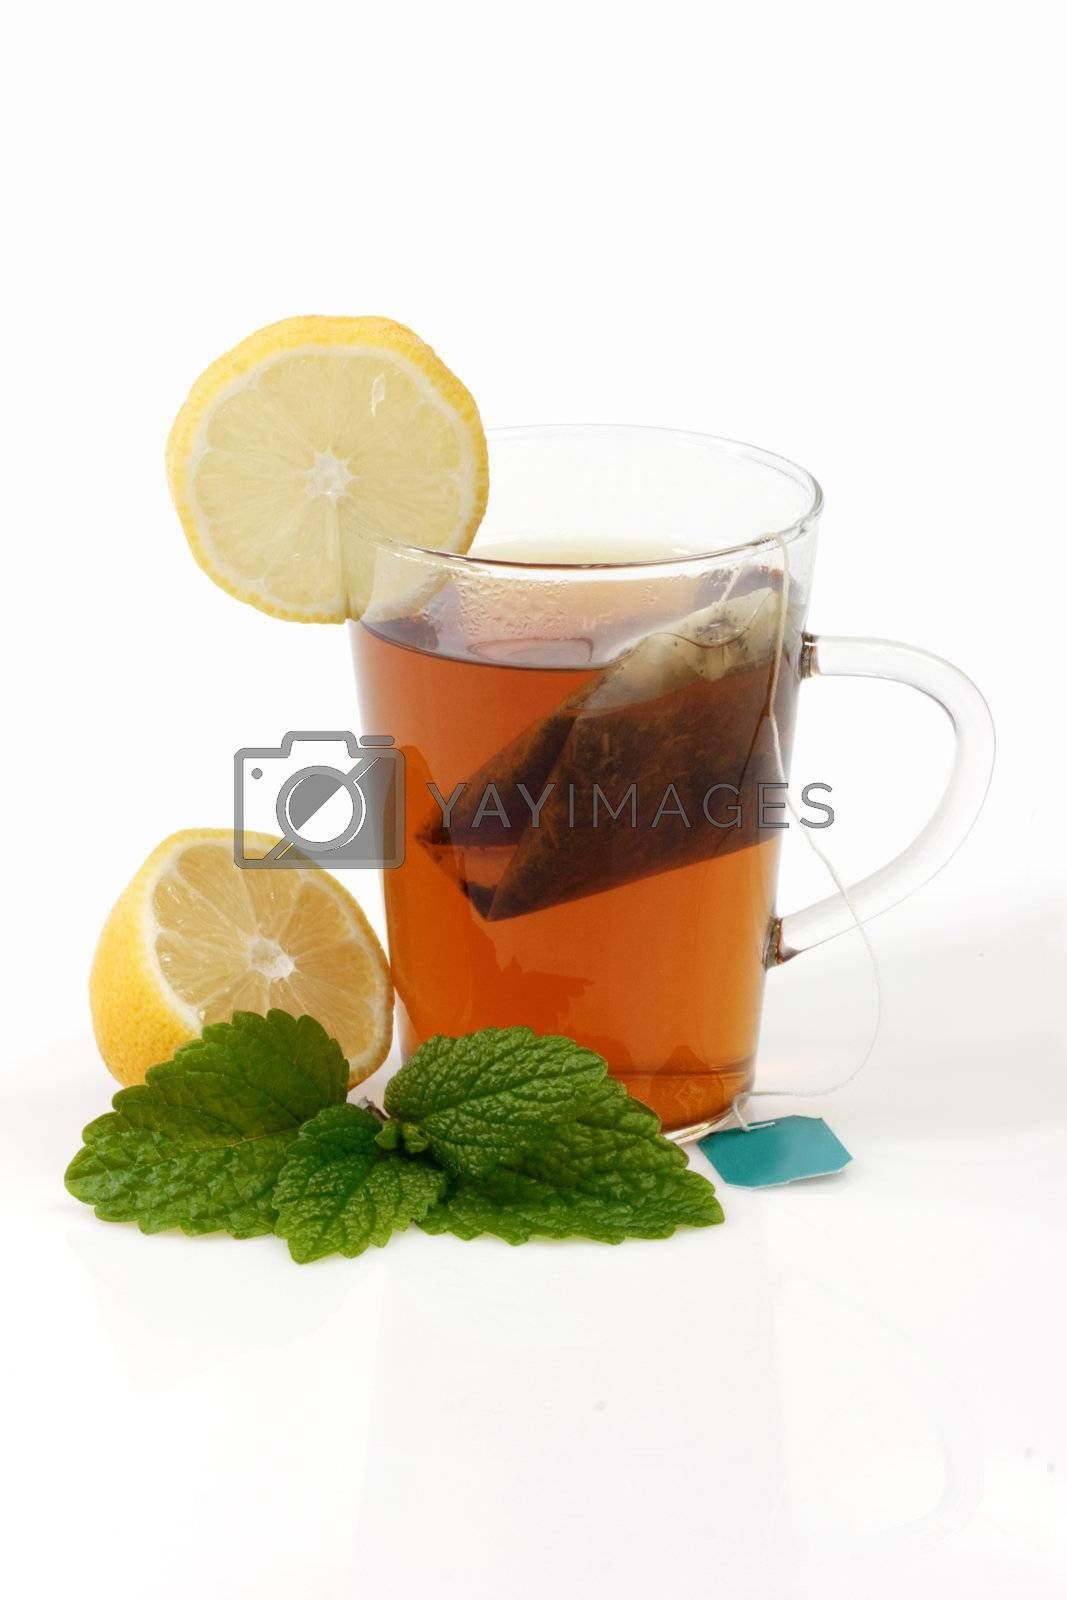 Peppermint tea in a glass - isolated on white background